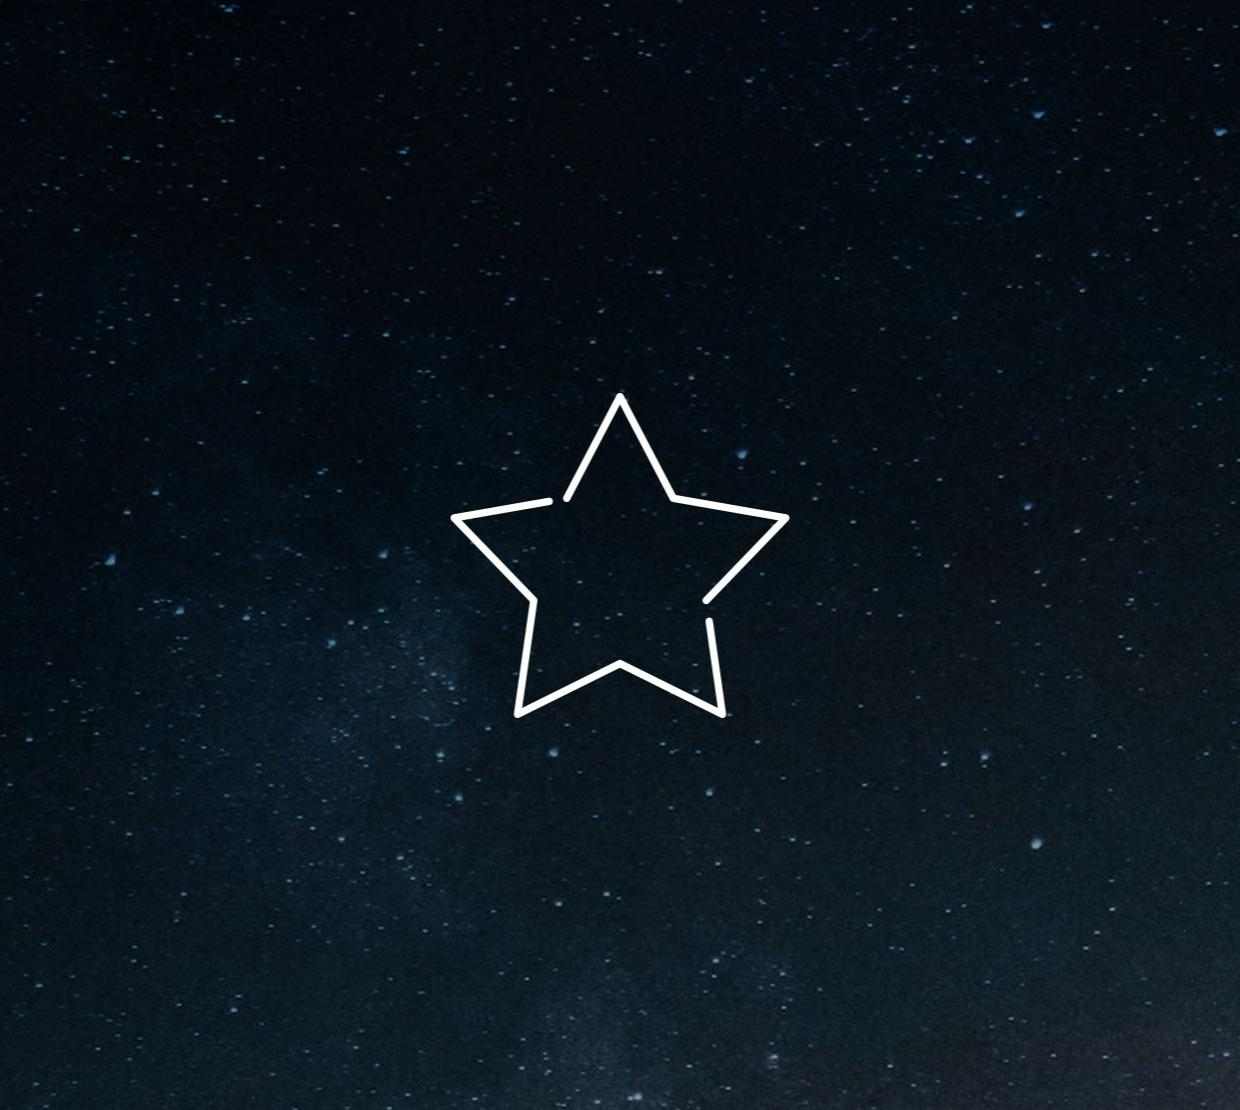 Star icon in front of an image of the night sky.